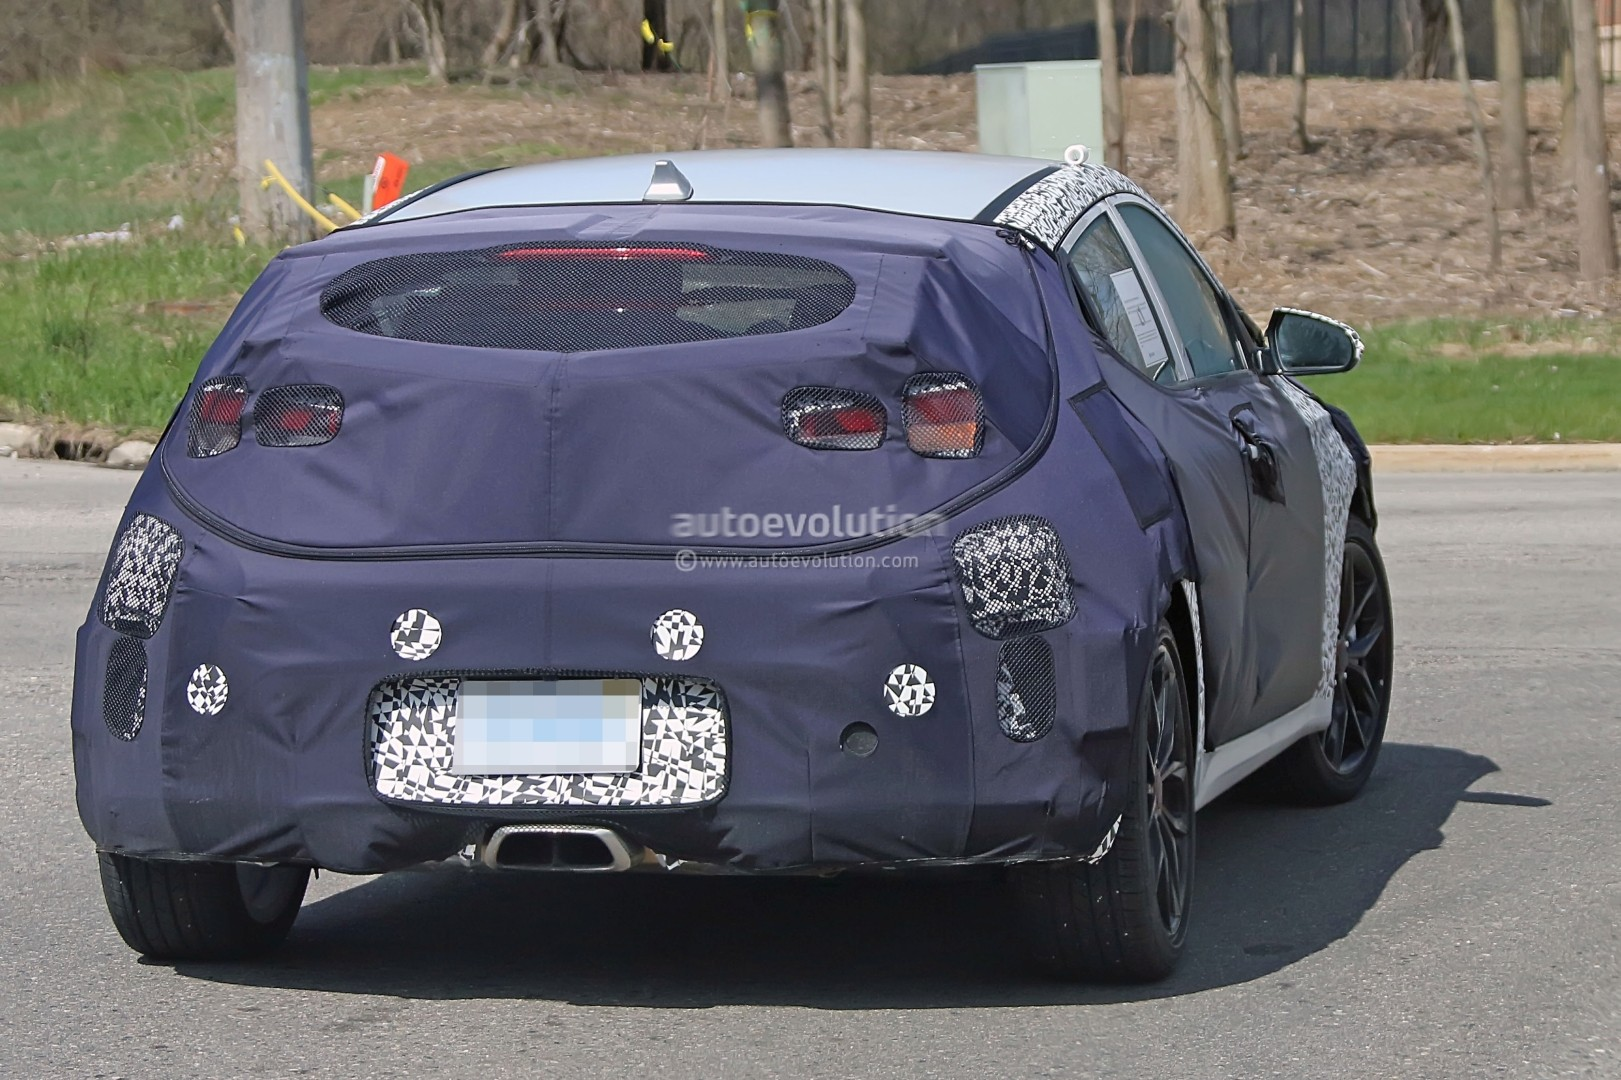 ... 2019 Hyundai Veloster spied & Second-Generation Hyundai Veloster Prototype Hides Cleaner Look Odd ...